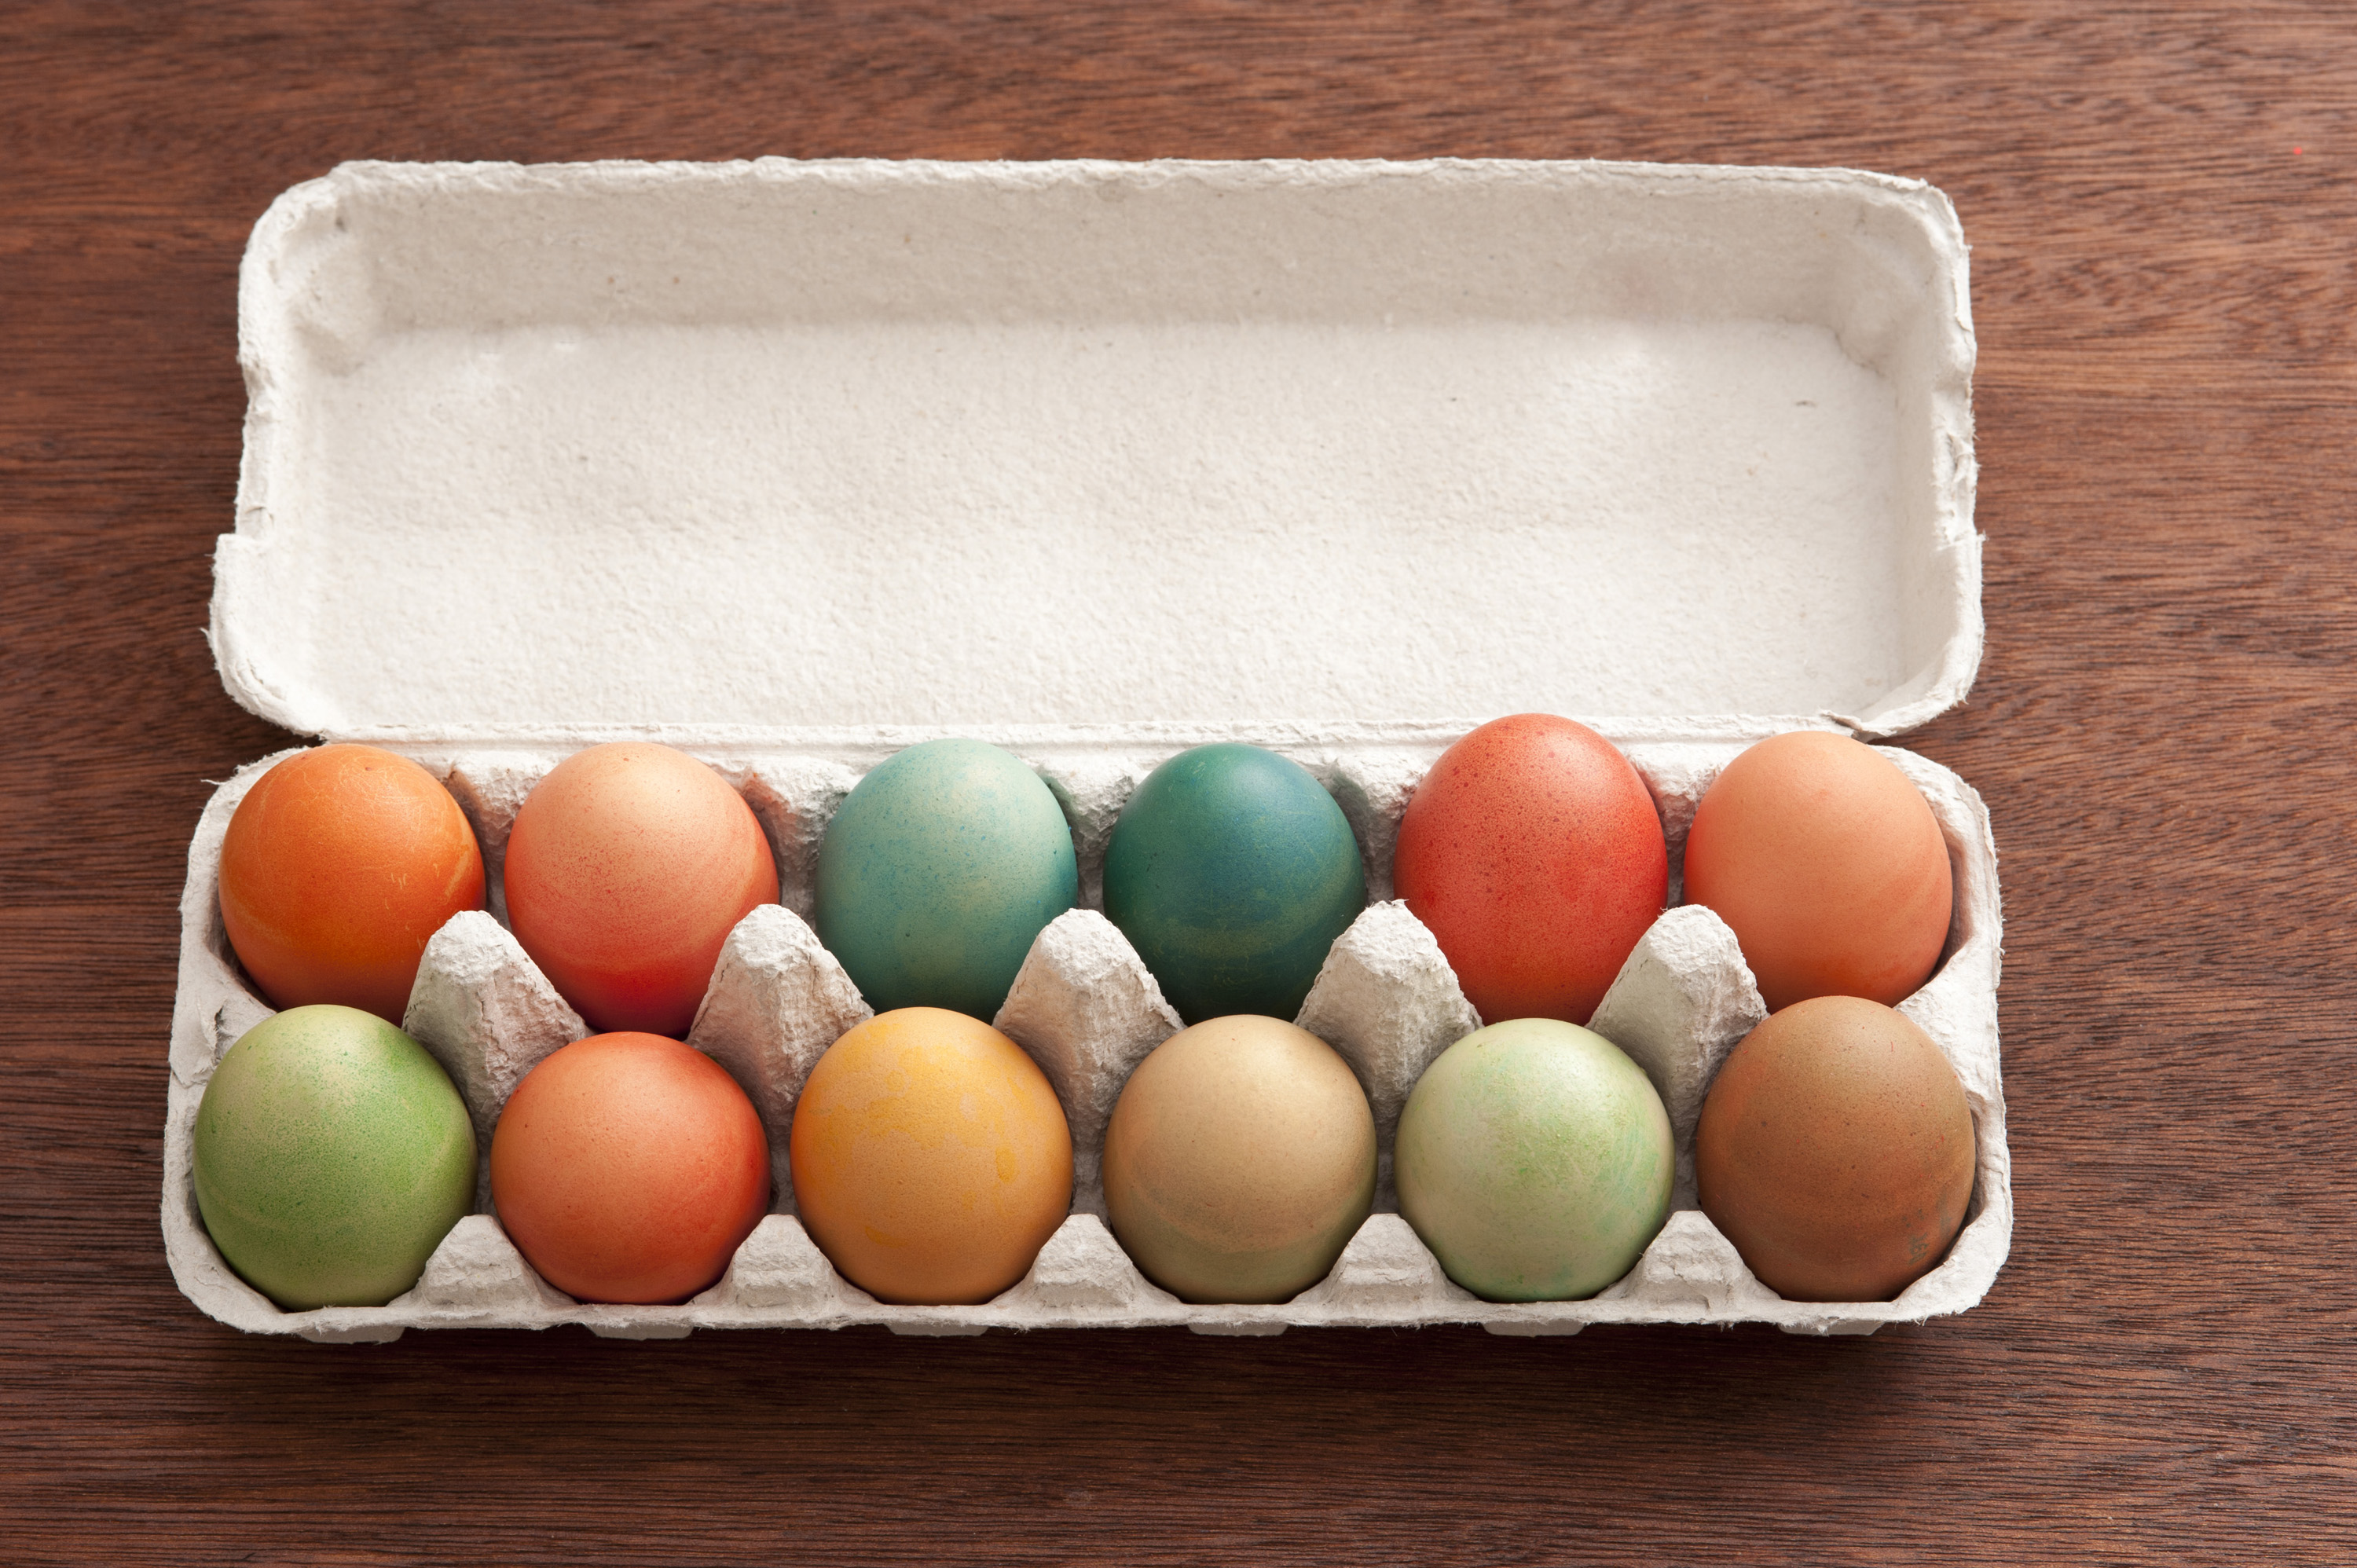 easter_egg_box.jpg - Top down view of dyed eggs in paper carton with blank underside of lid for Easter holiday theme